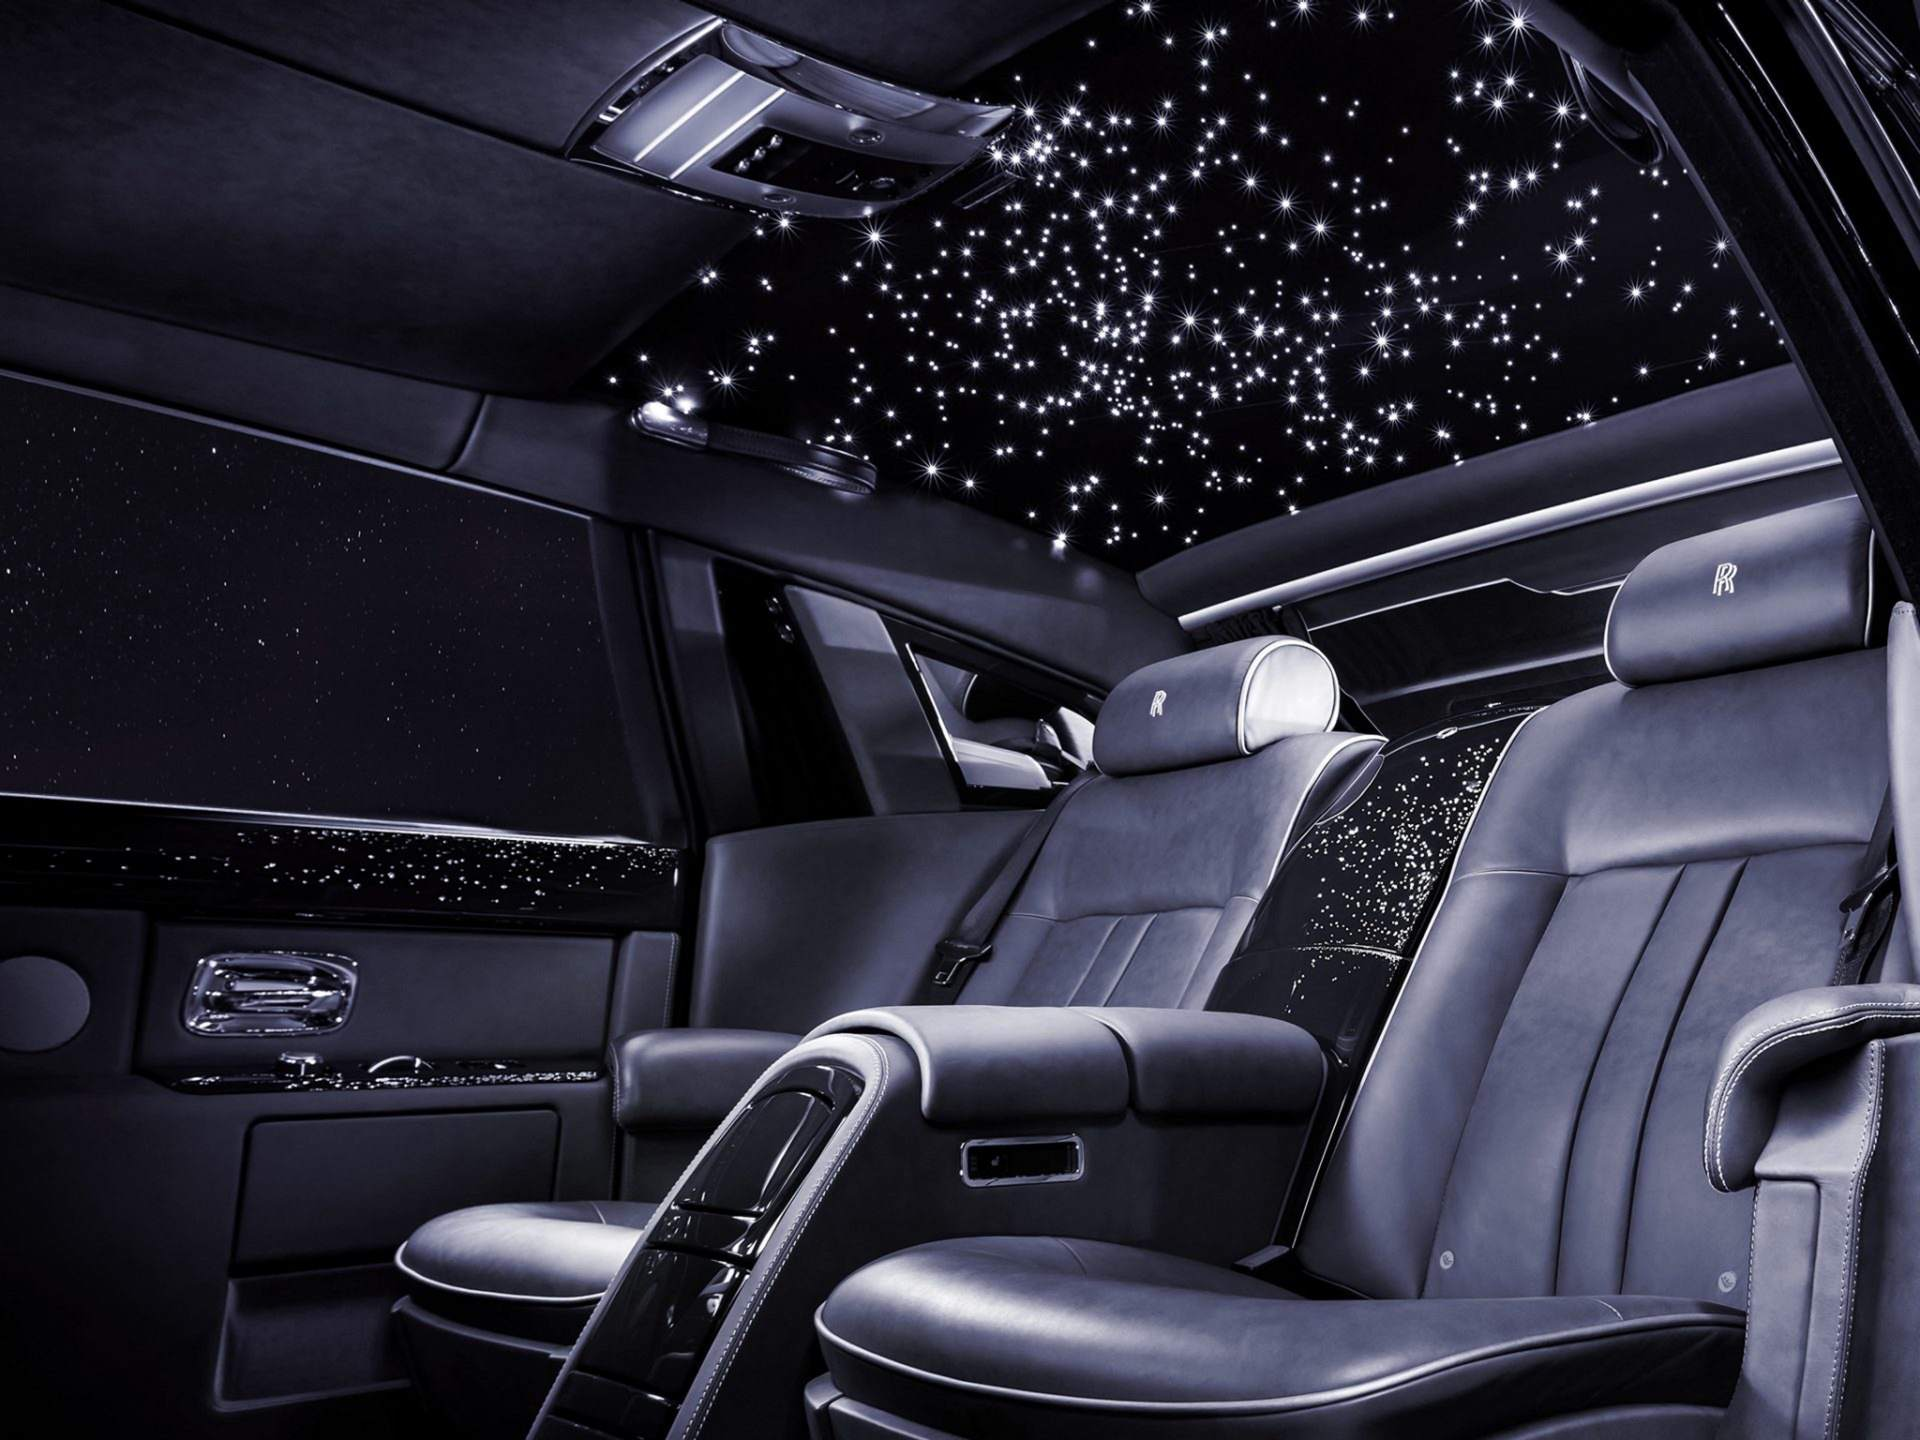 A fully black Rolls-Royce interior with the Starlight Headliner above the back passenger seats